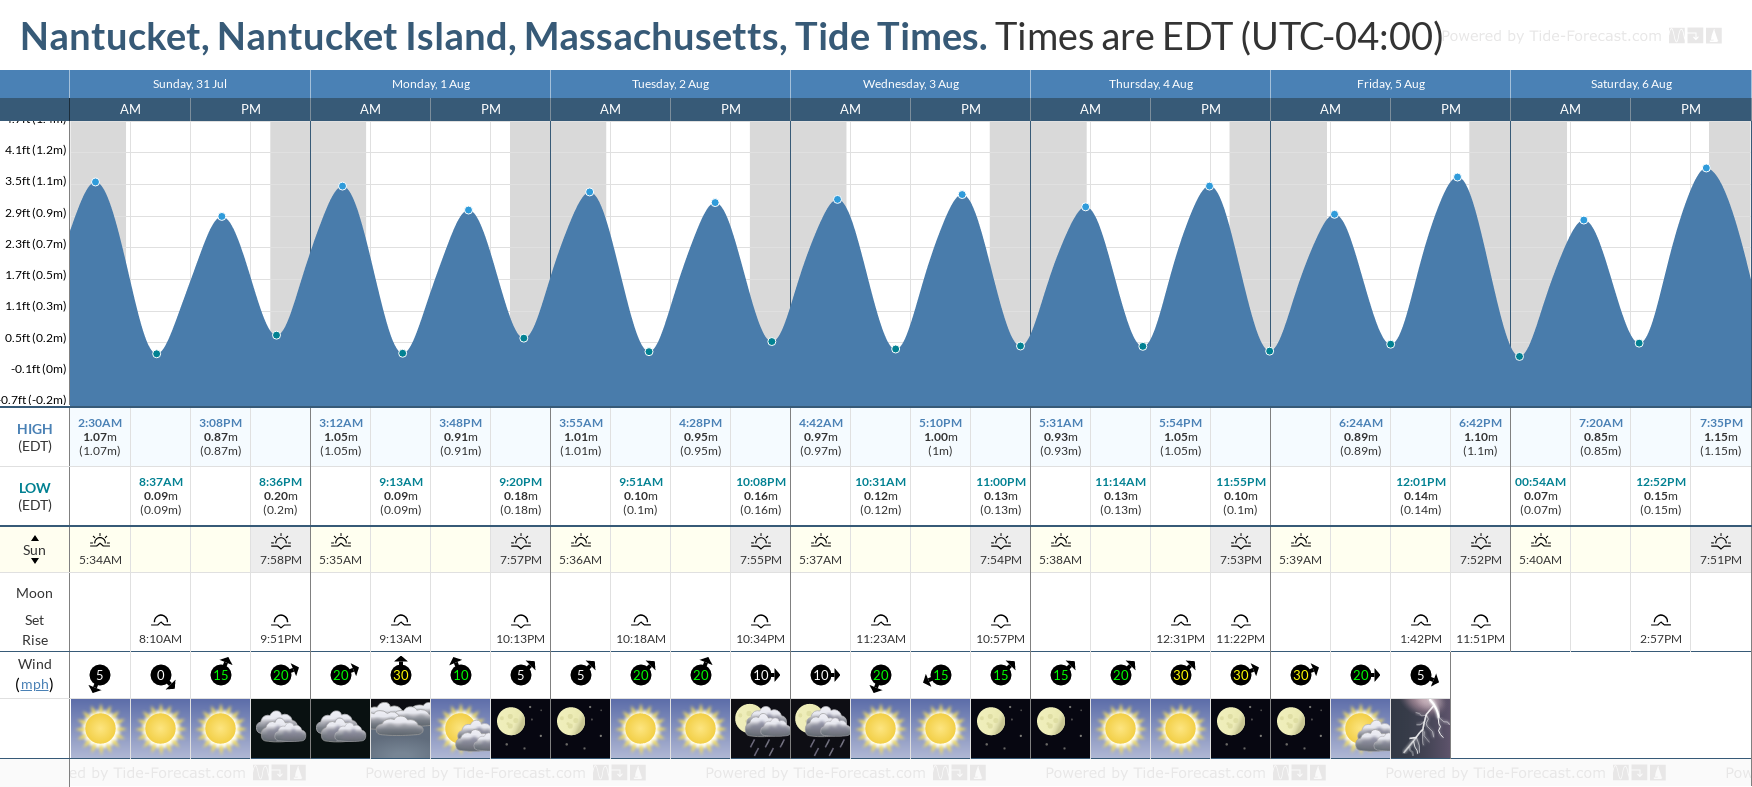 Nantucket, Nantucket Island, Massachusetts Tide Chart including high and low tide tide times for the next 7 days